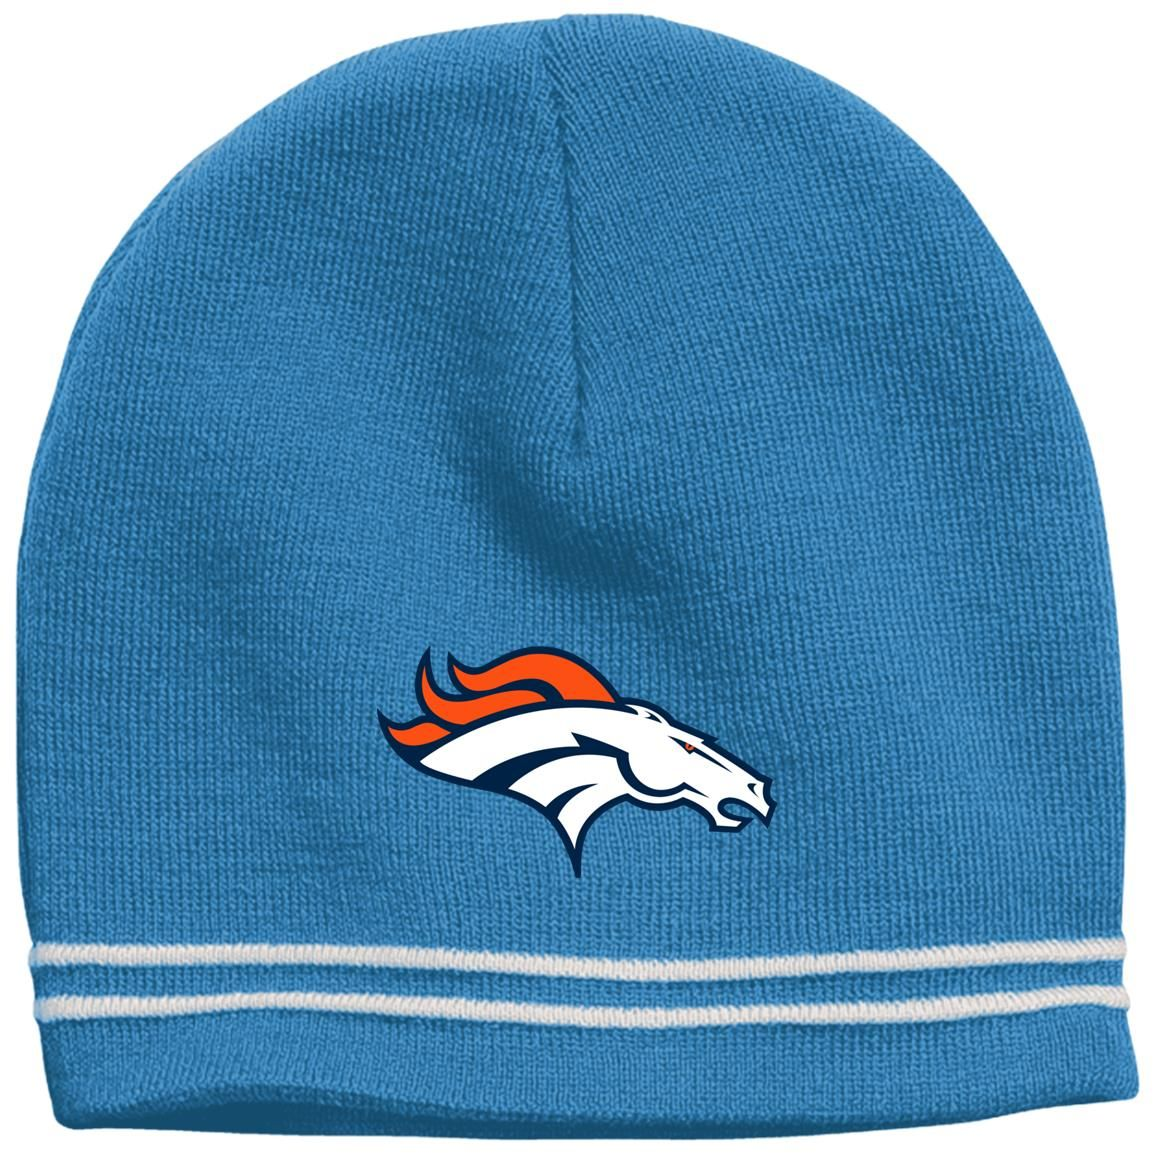 Denver Broncos Nfl Sport Tek Colorblock Beanie Check More At Https Lapommenyc Com Product D Nfl Sports Nfl Nfl Merchandise The national football league (nfl) is a professional american football league consisting of 32 teams, divided equally between the national football conference (nfc). pinterest